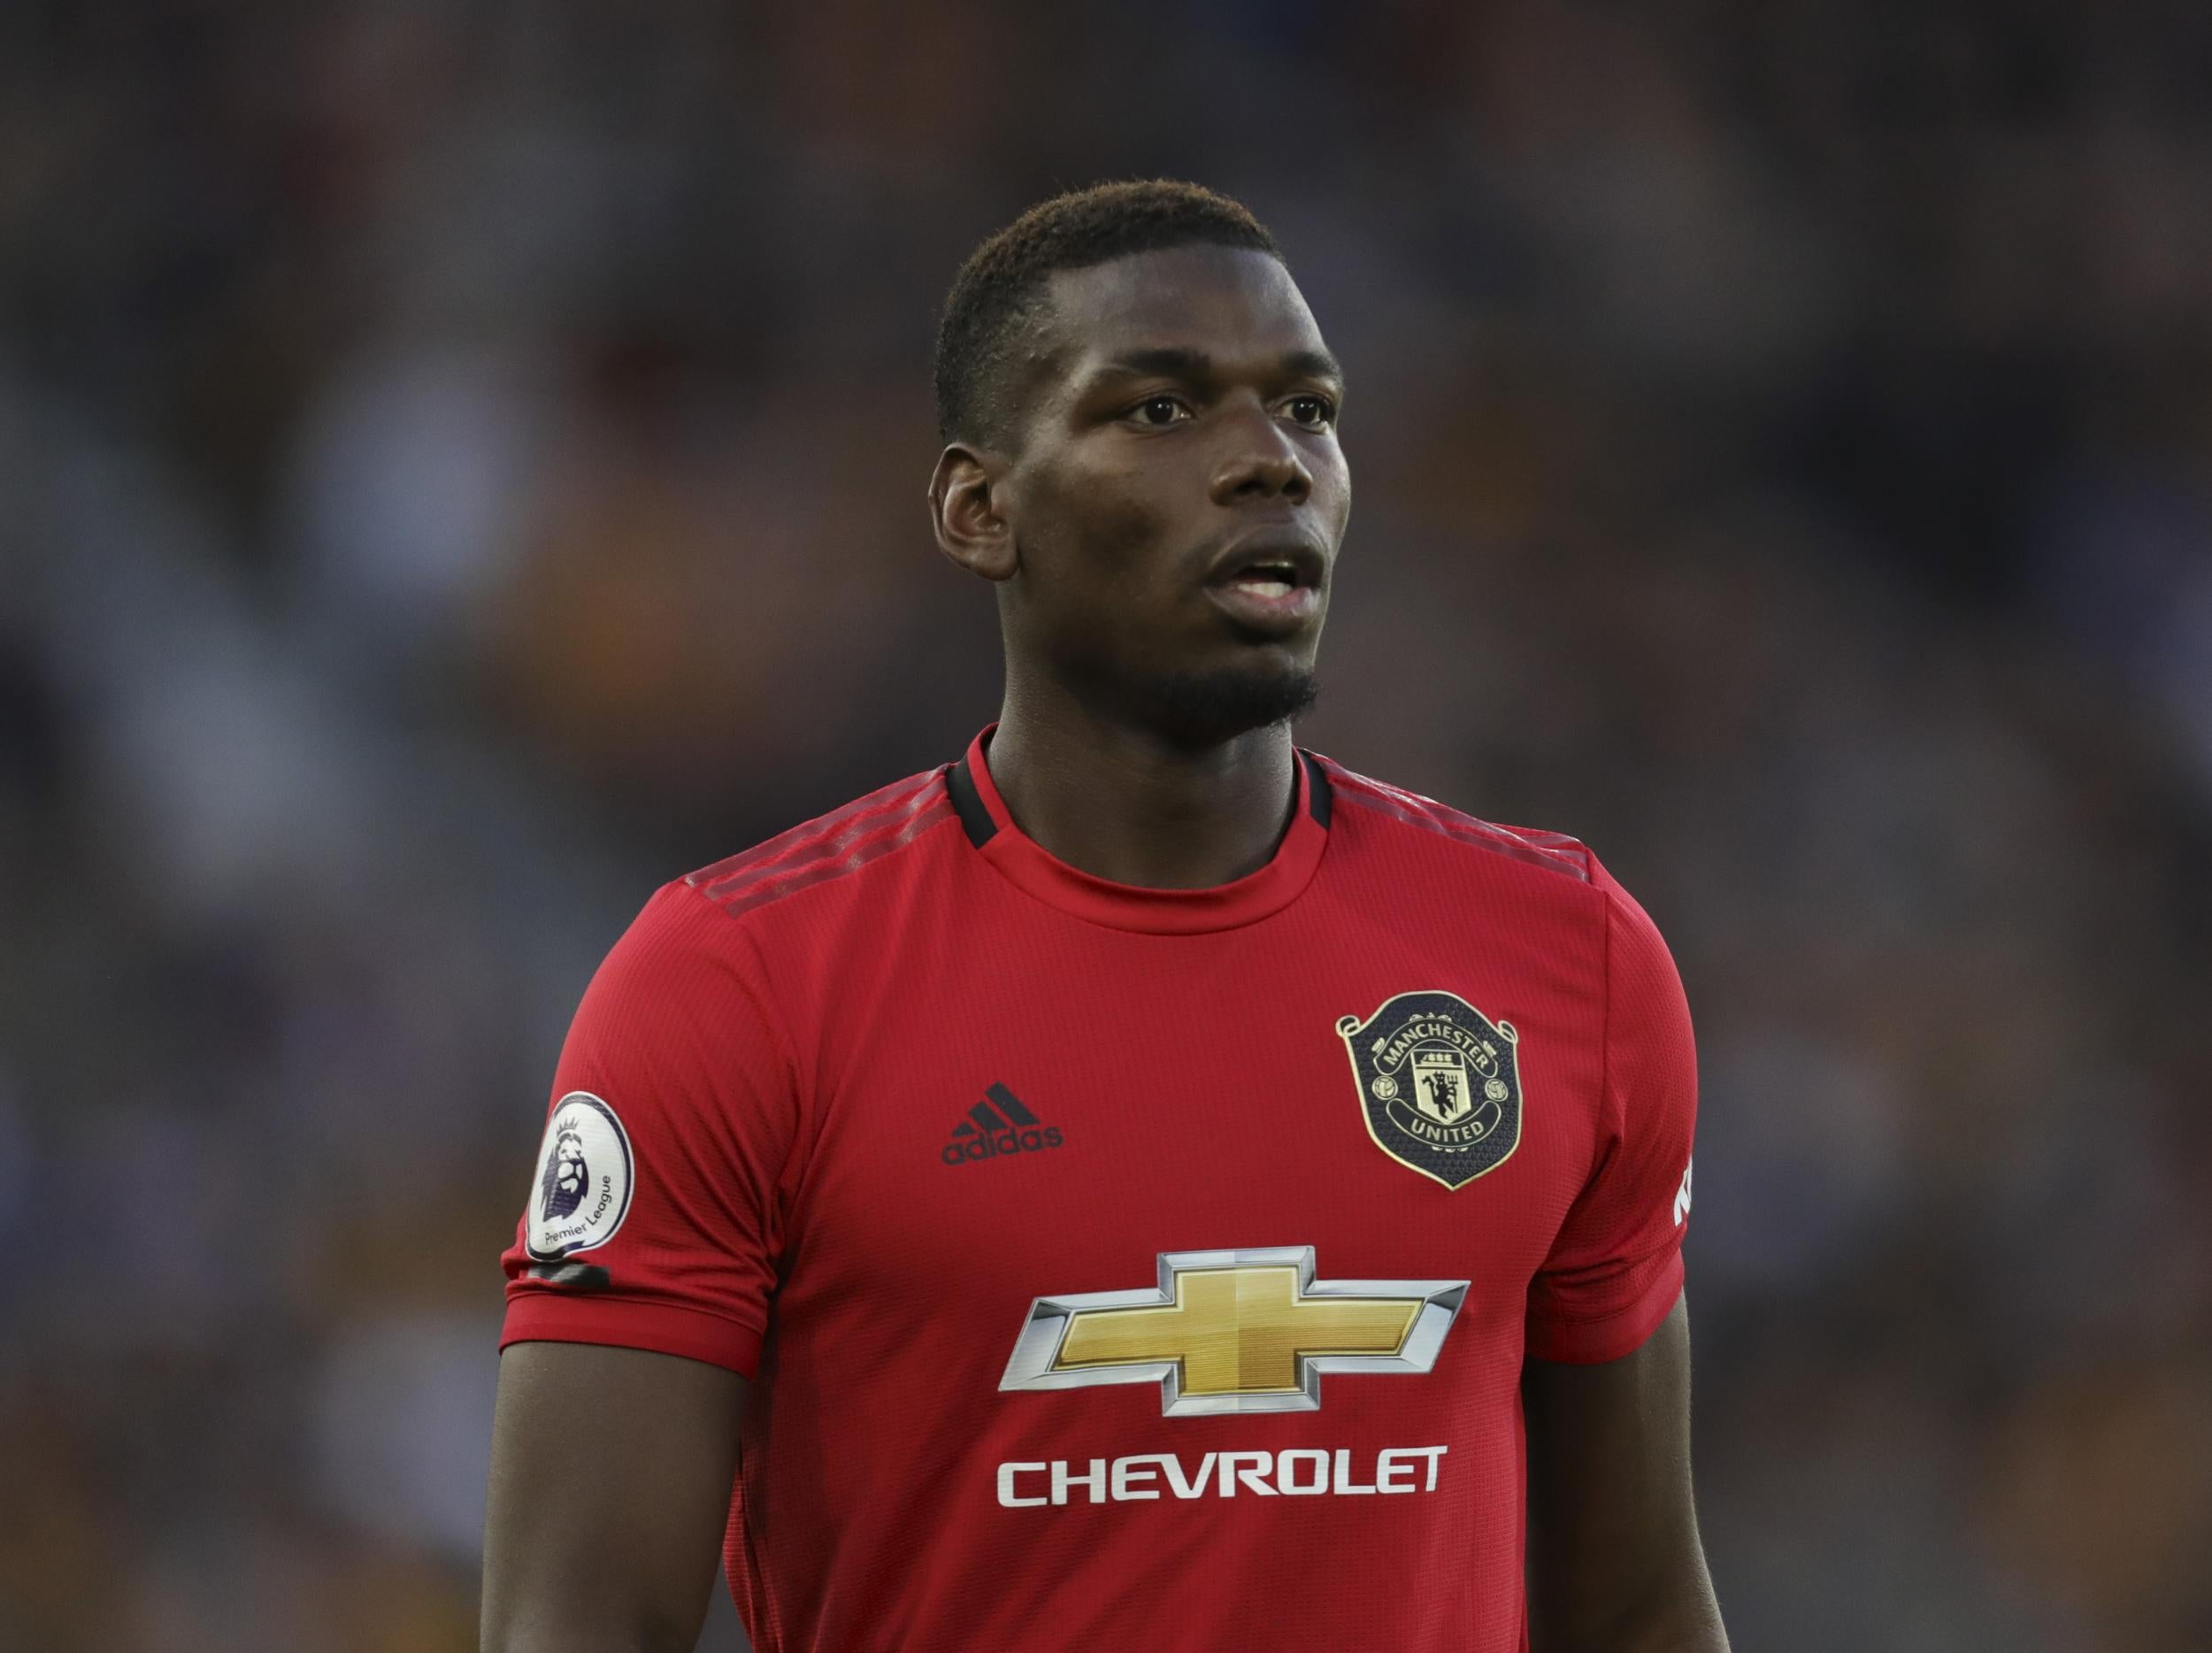 Paul Pogba, Riyad Mahrez, Michael Owen and more: The worst penalty takers in Premier League history